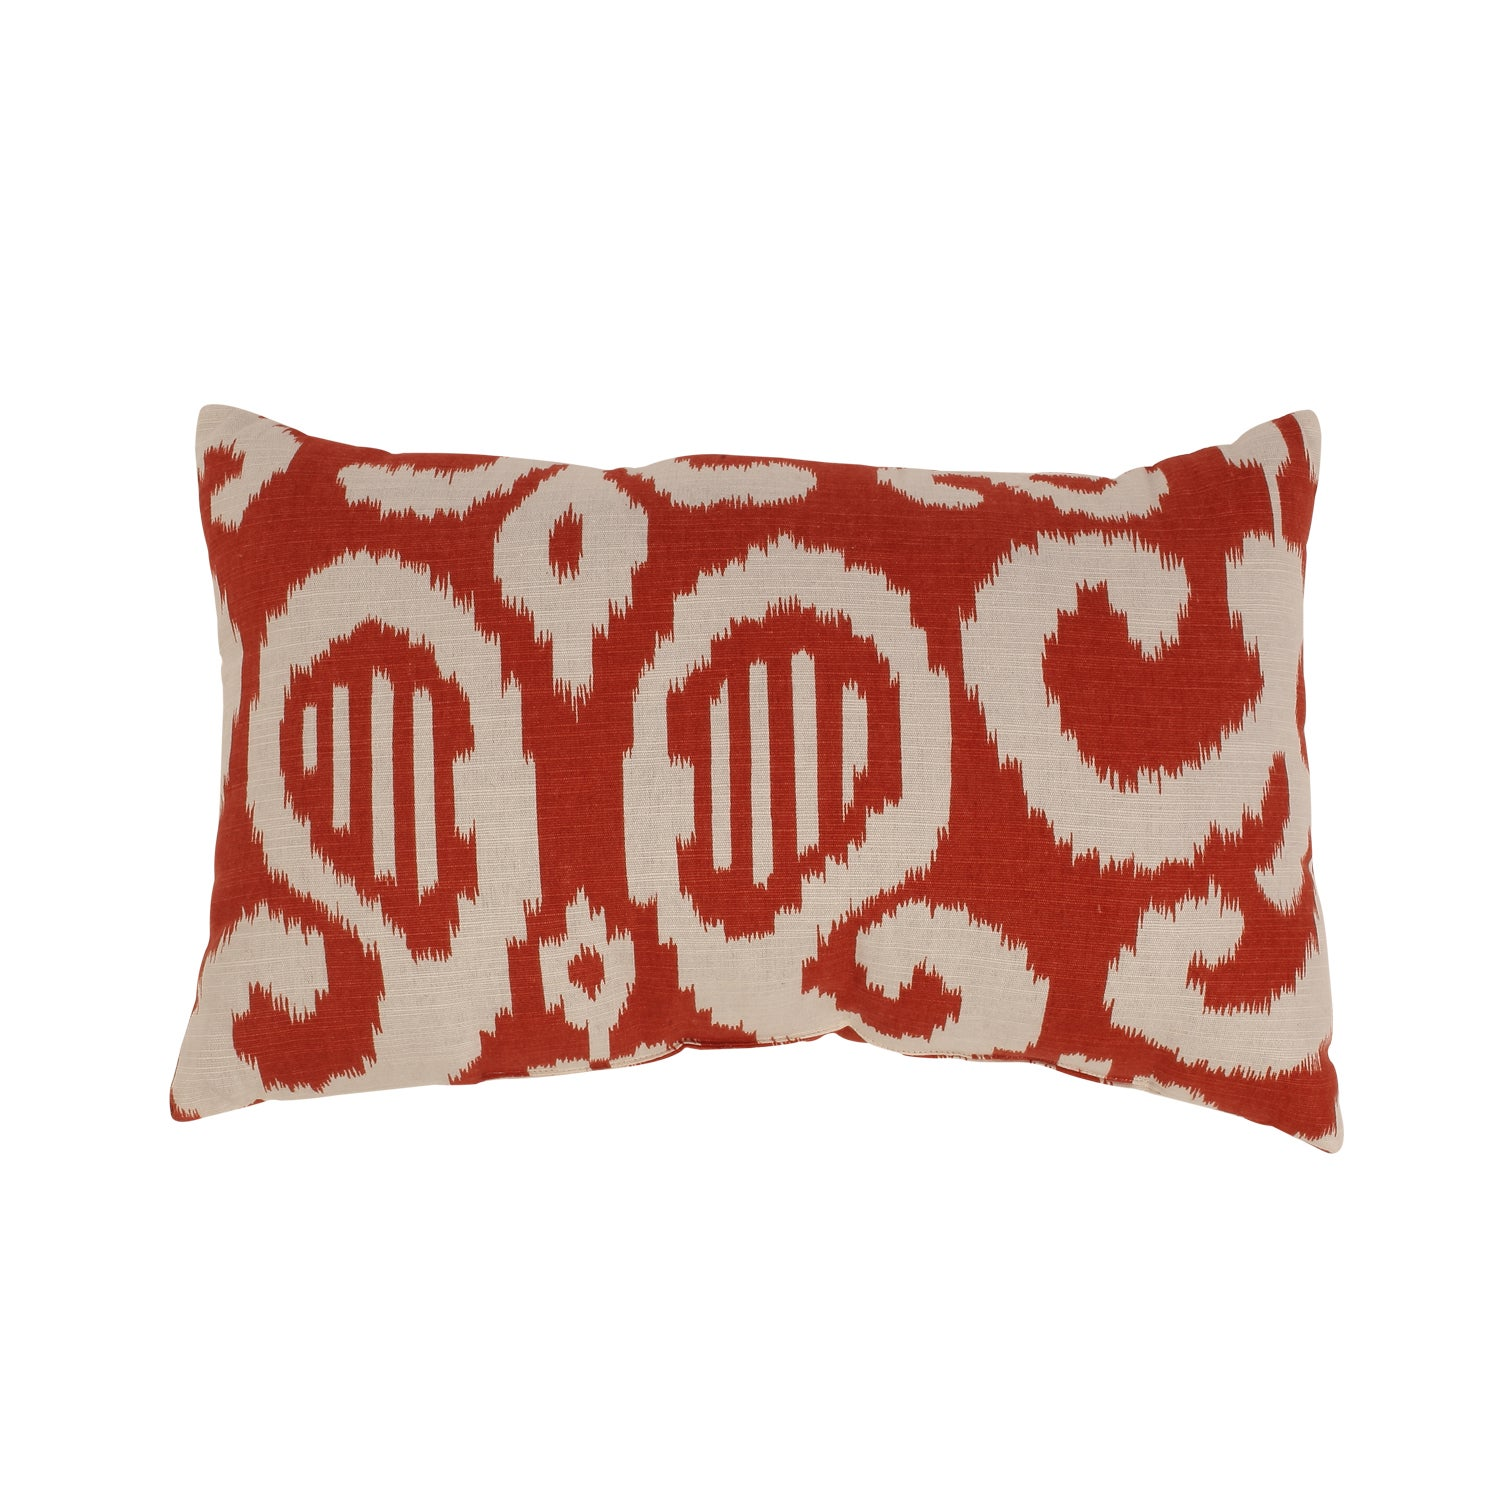 Fergano Rectangular Throw Pillow in Flame